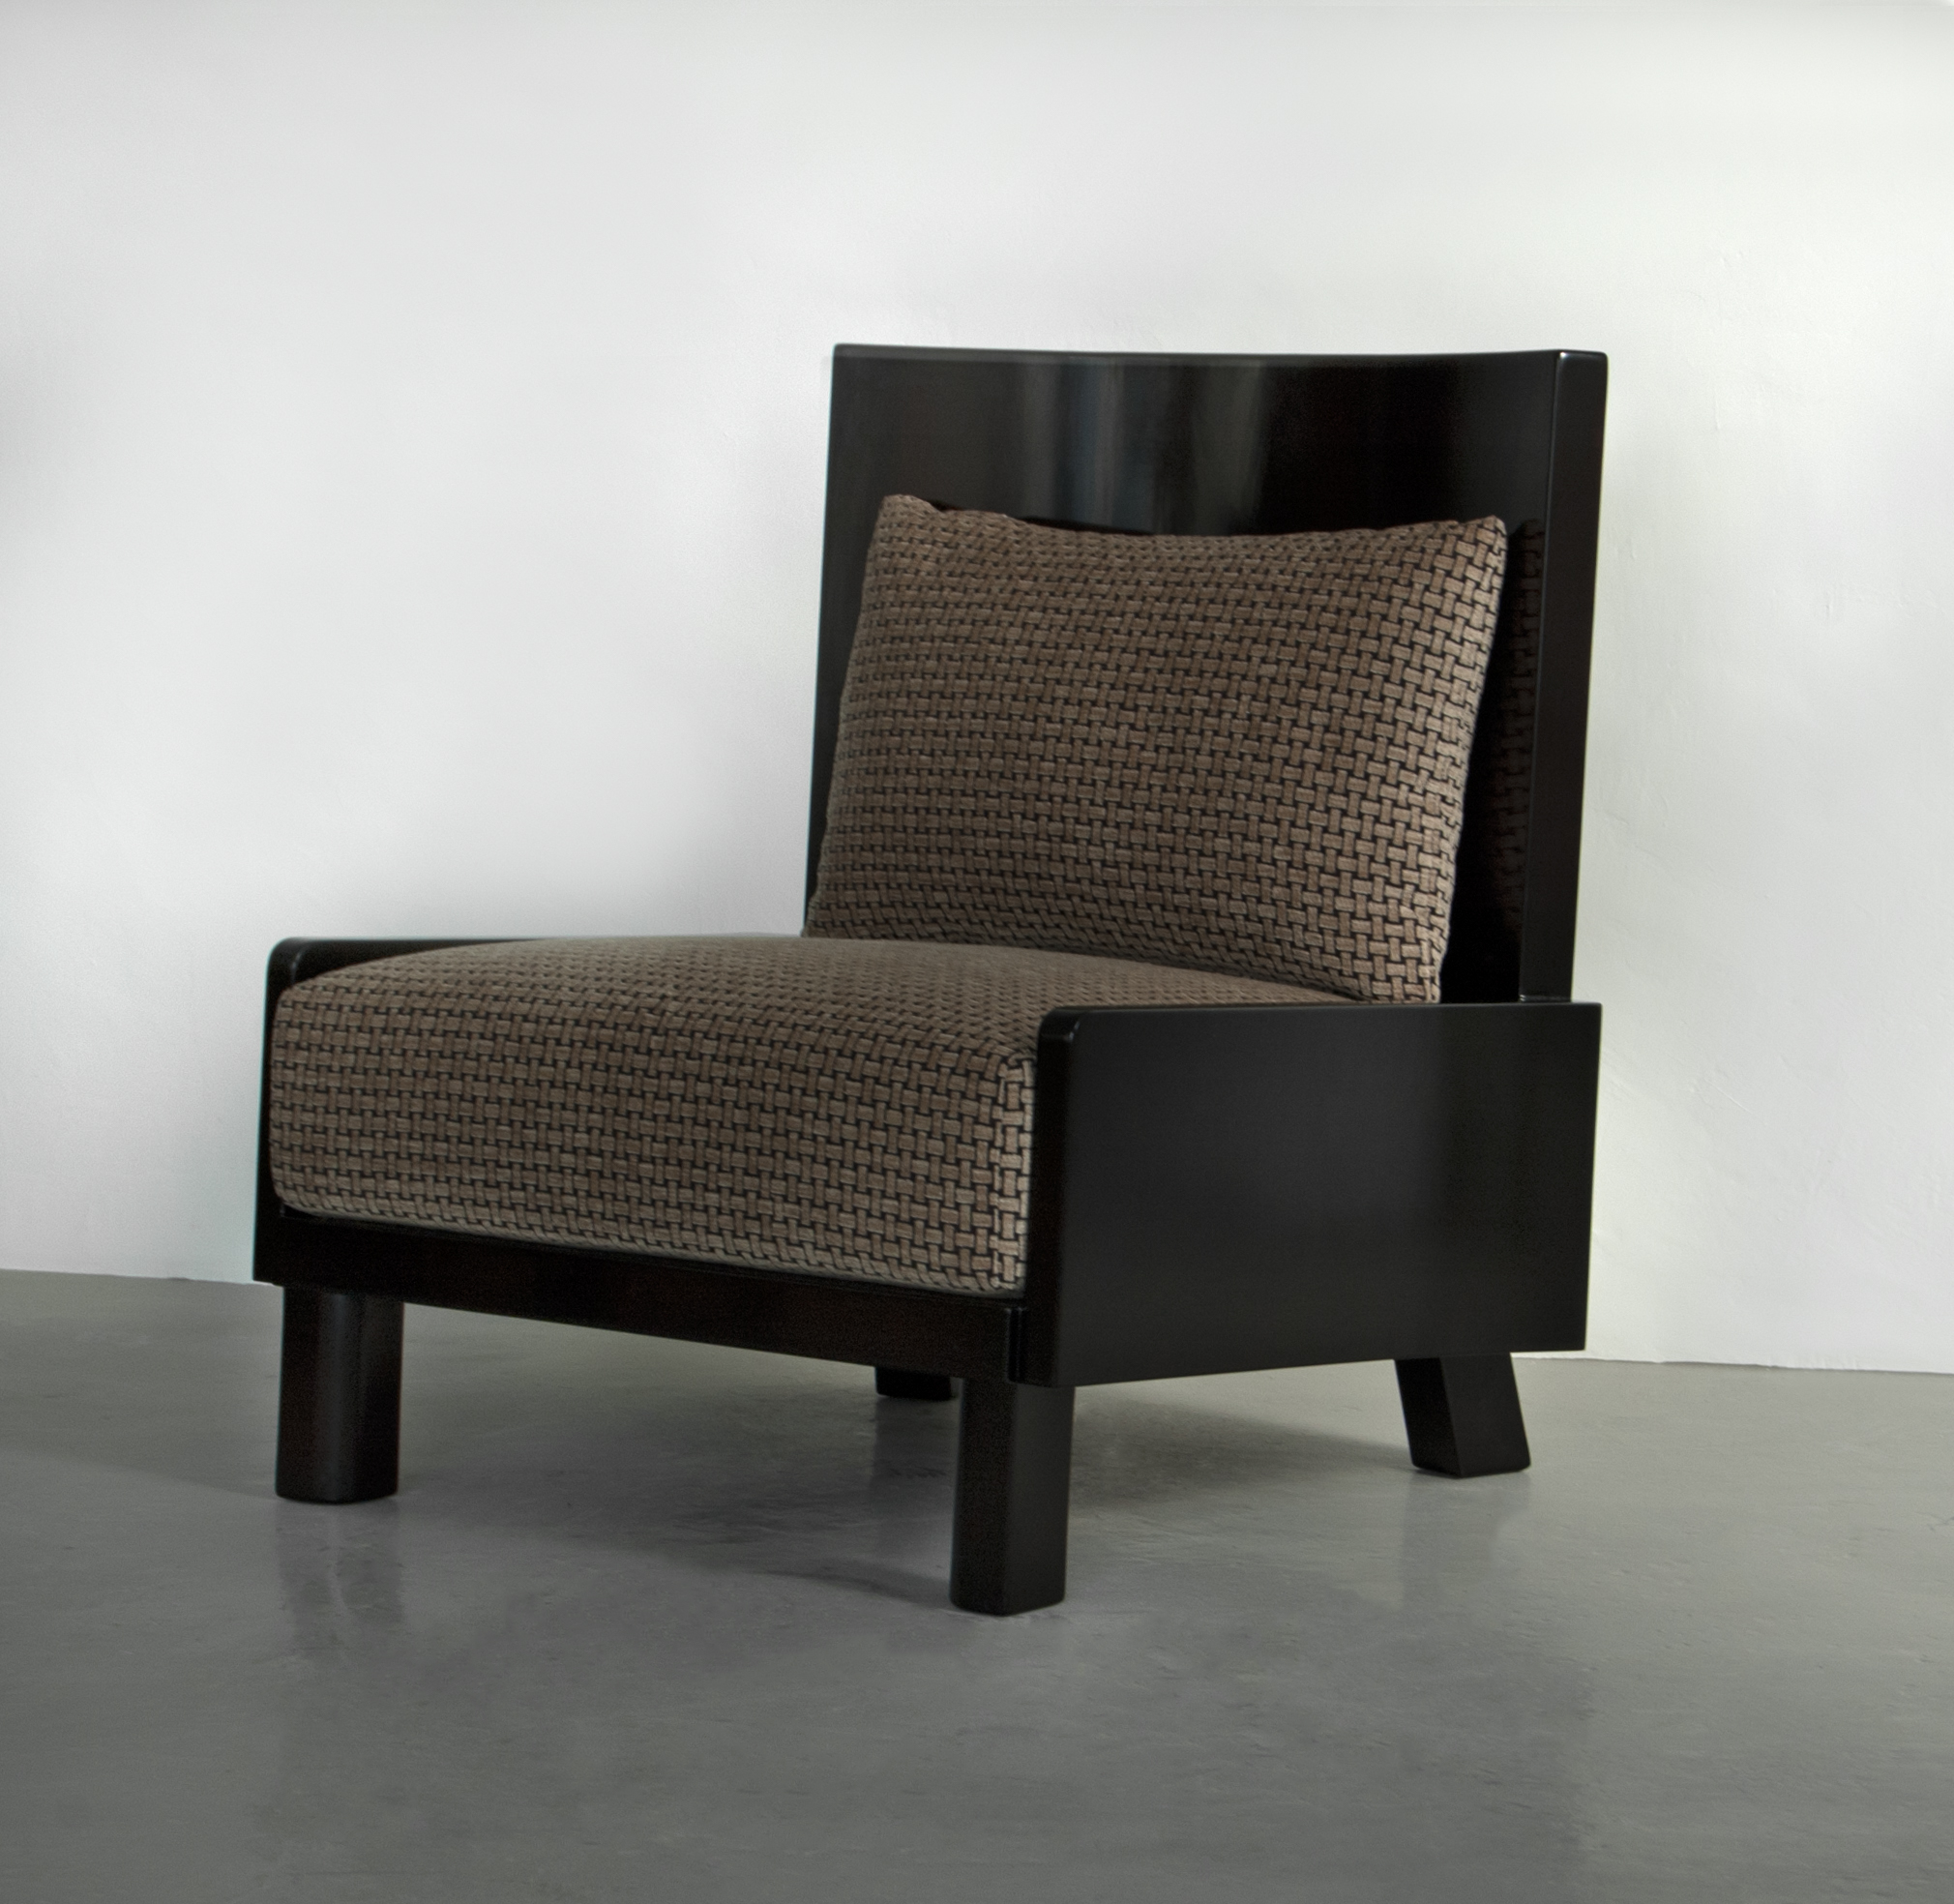 ....Modern furniture : Lounge chair..现代家具: 休闲椅....